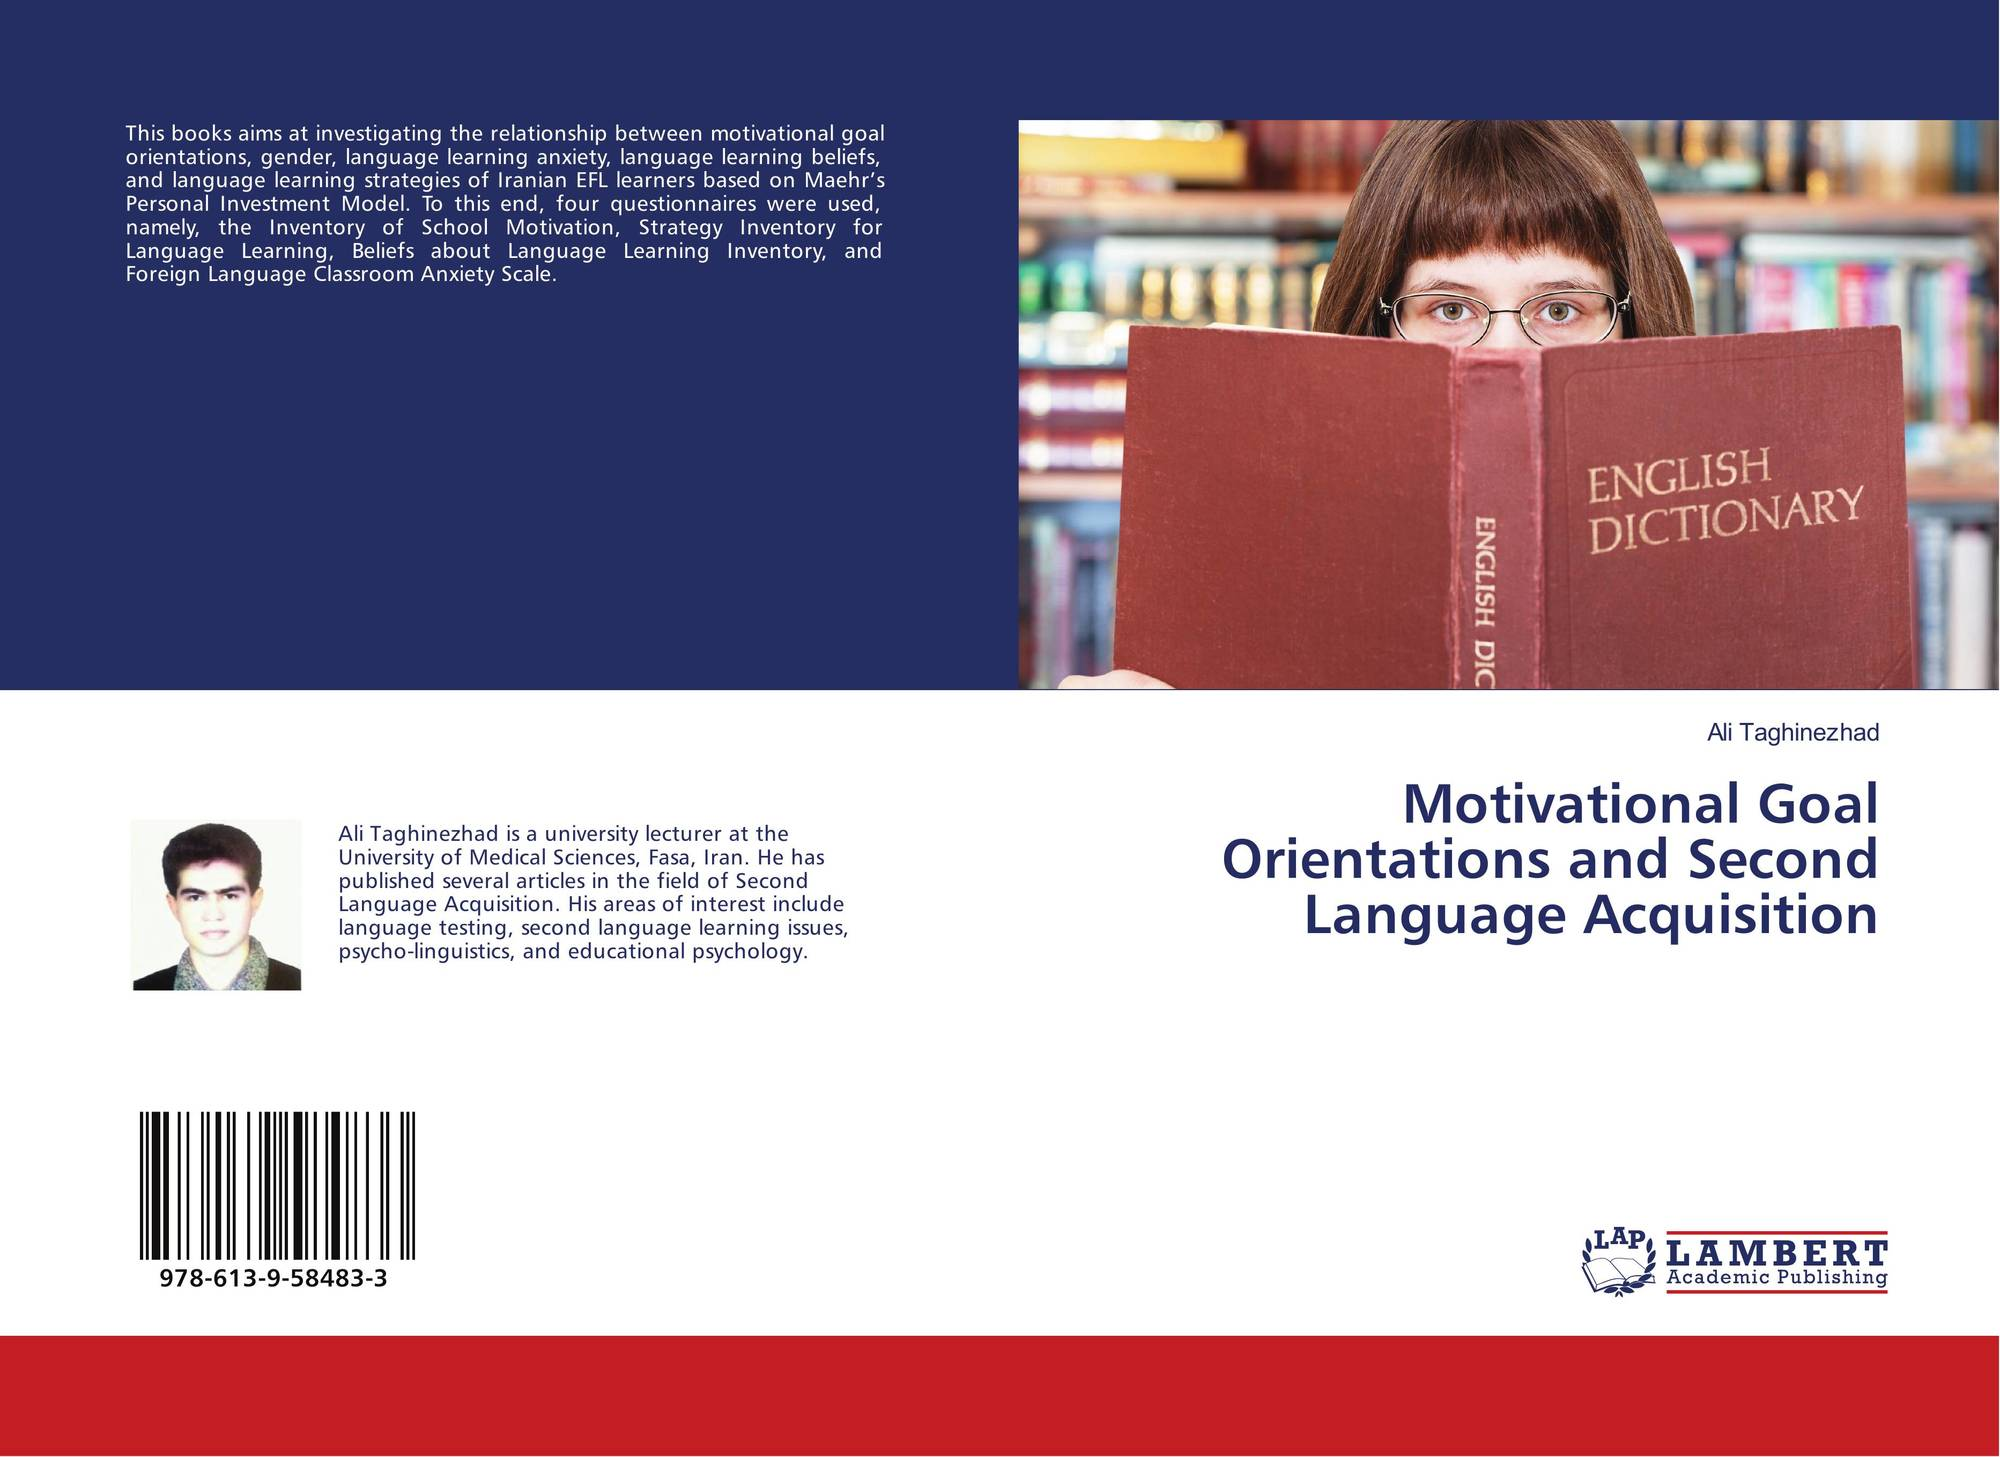 motivation variables and second language acquisition In this study, integrative motivation and instrumental motivation are examined to establish the correlation between the form of motivation and successful second language acquisition.